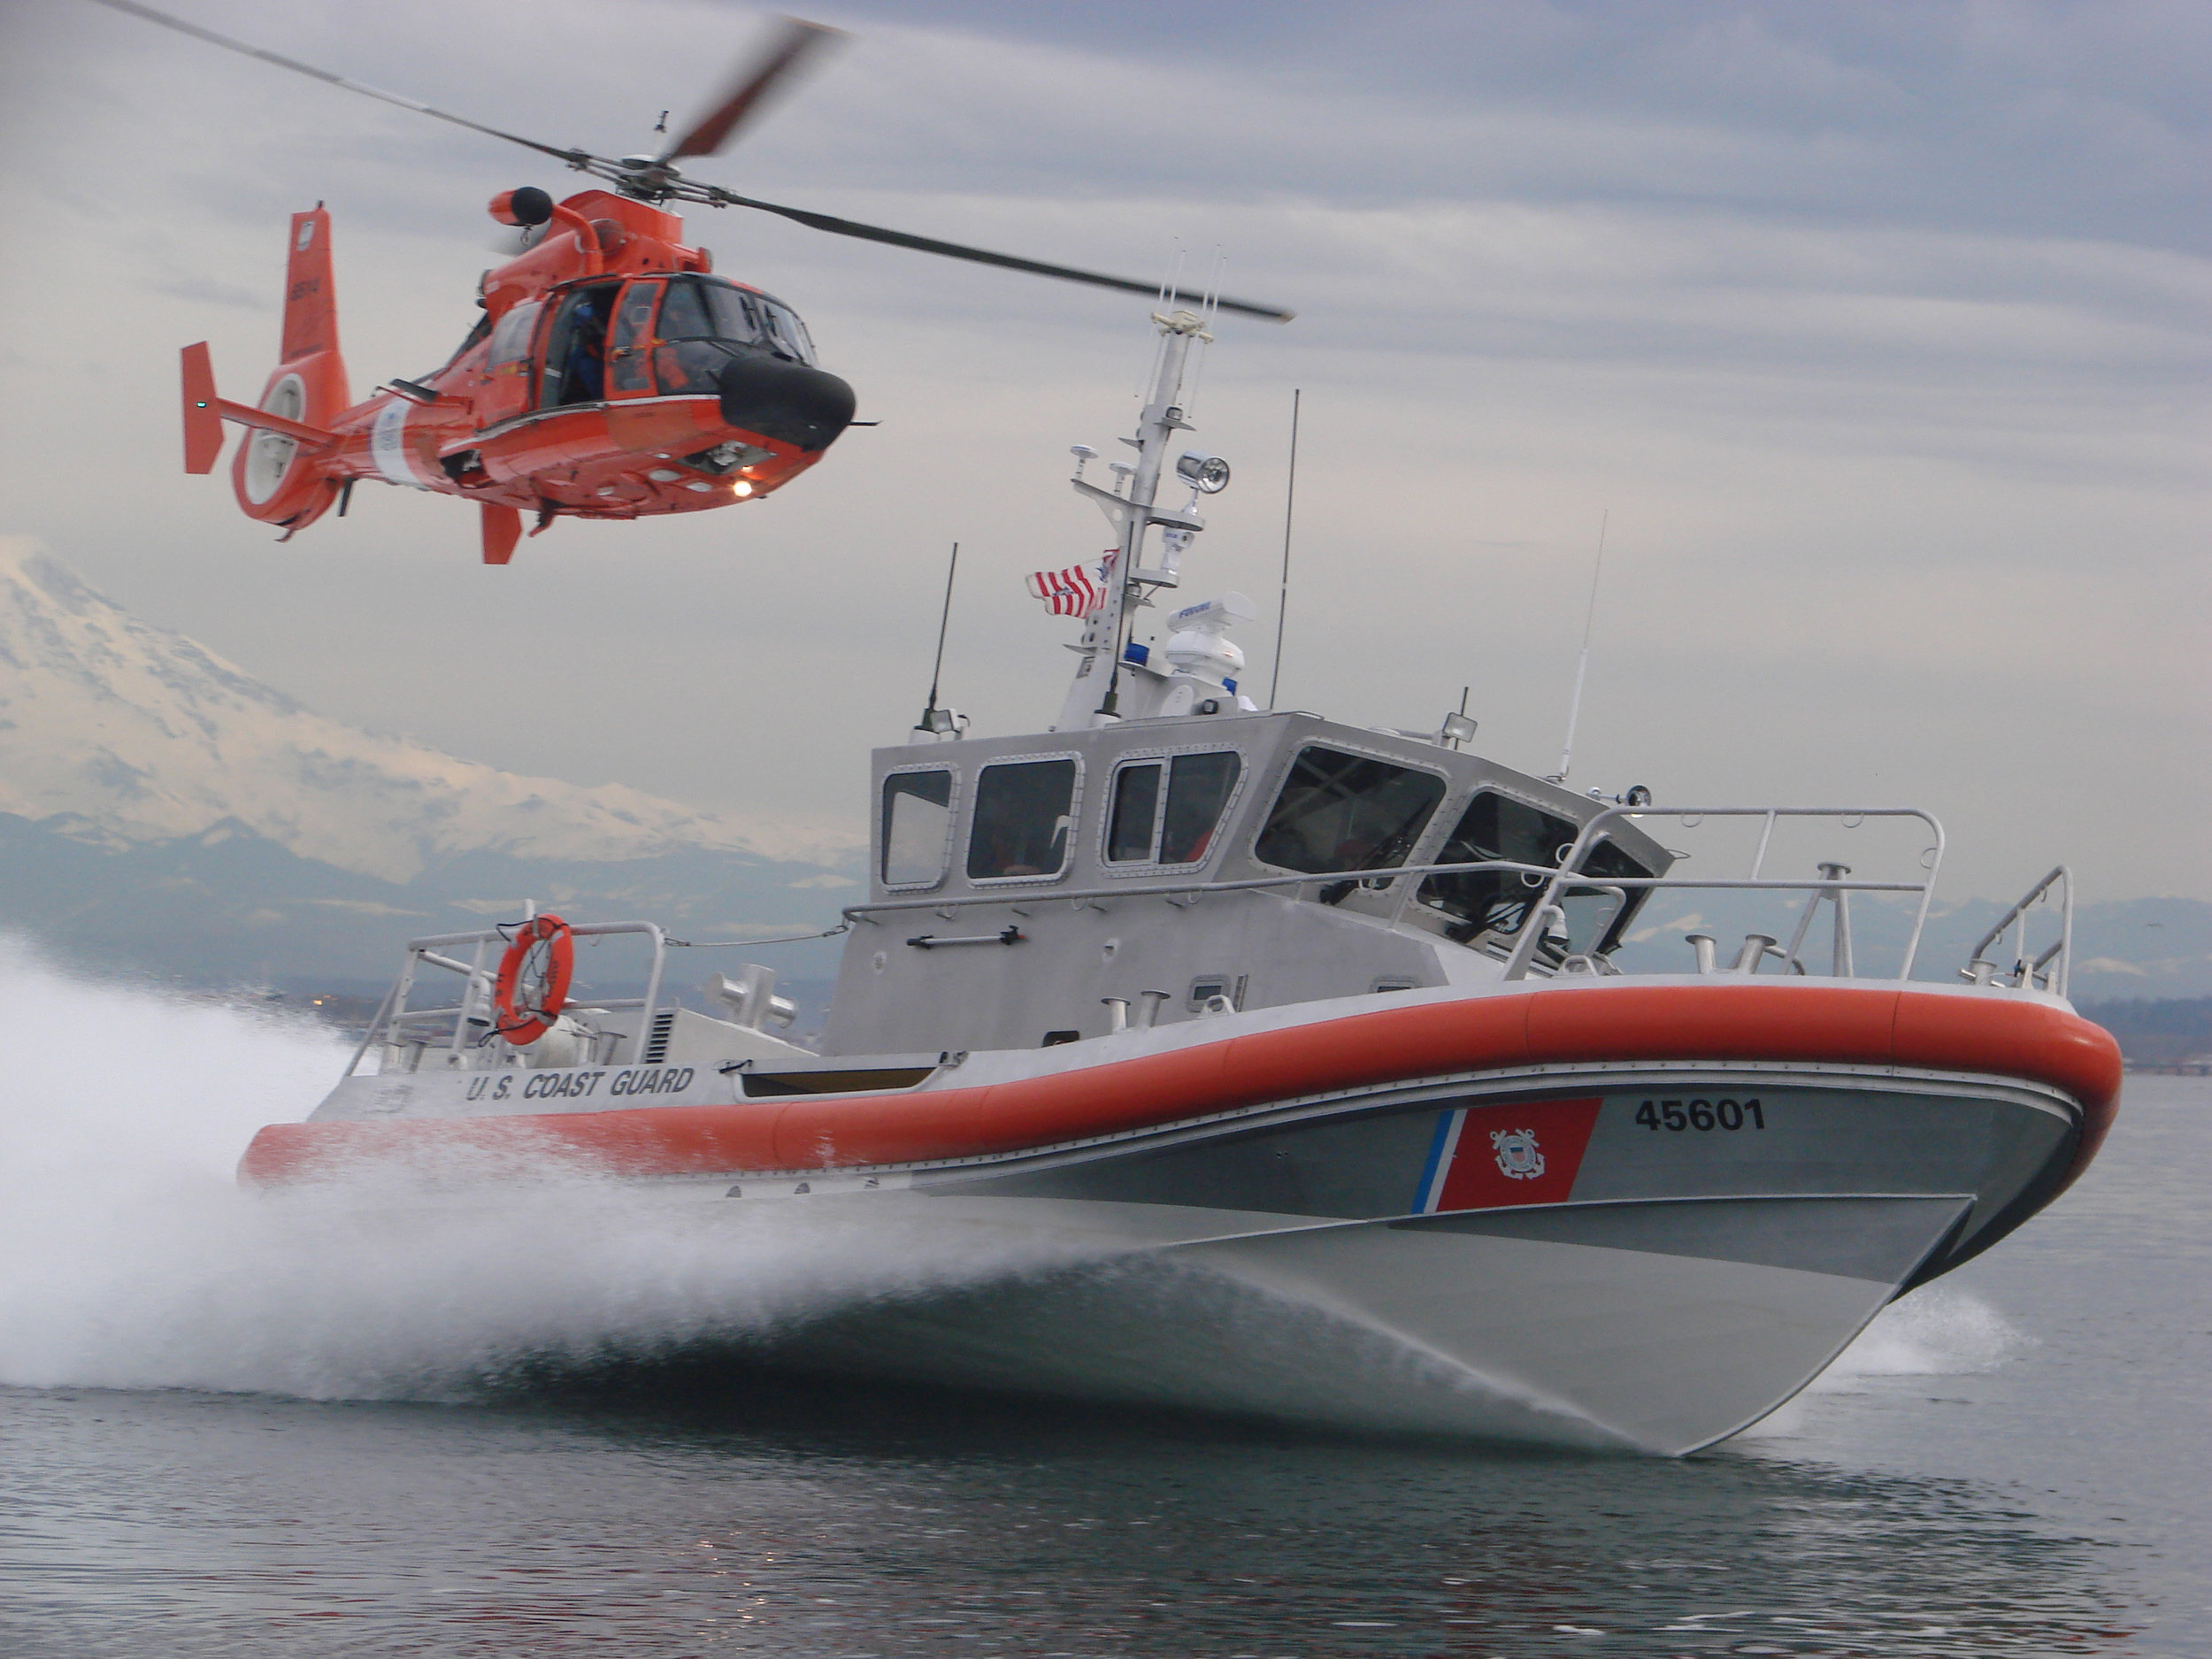 Puget Sound is home to the Thirteenth Coast Guard District, Coast Guard Sector Puget Sound and Air Station Port Angeles.  Puget Sound is also a Navy strategic port. The region also includes Fort Lewis and McChord AFB.